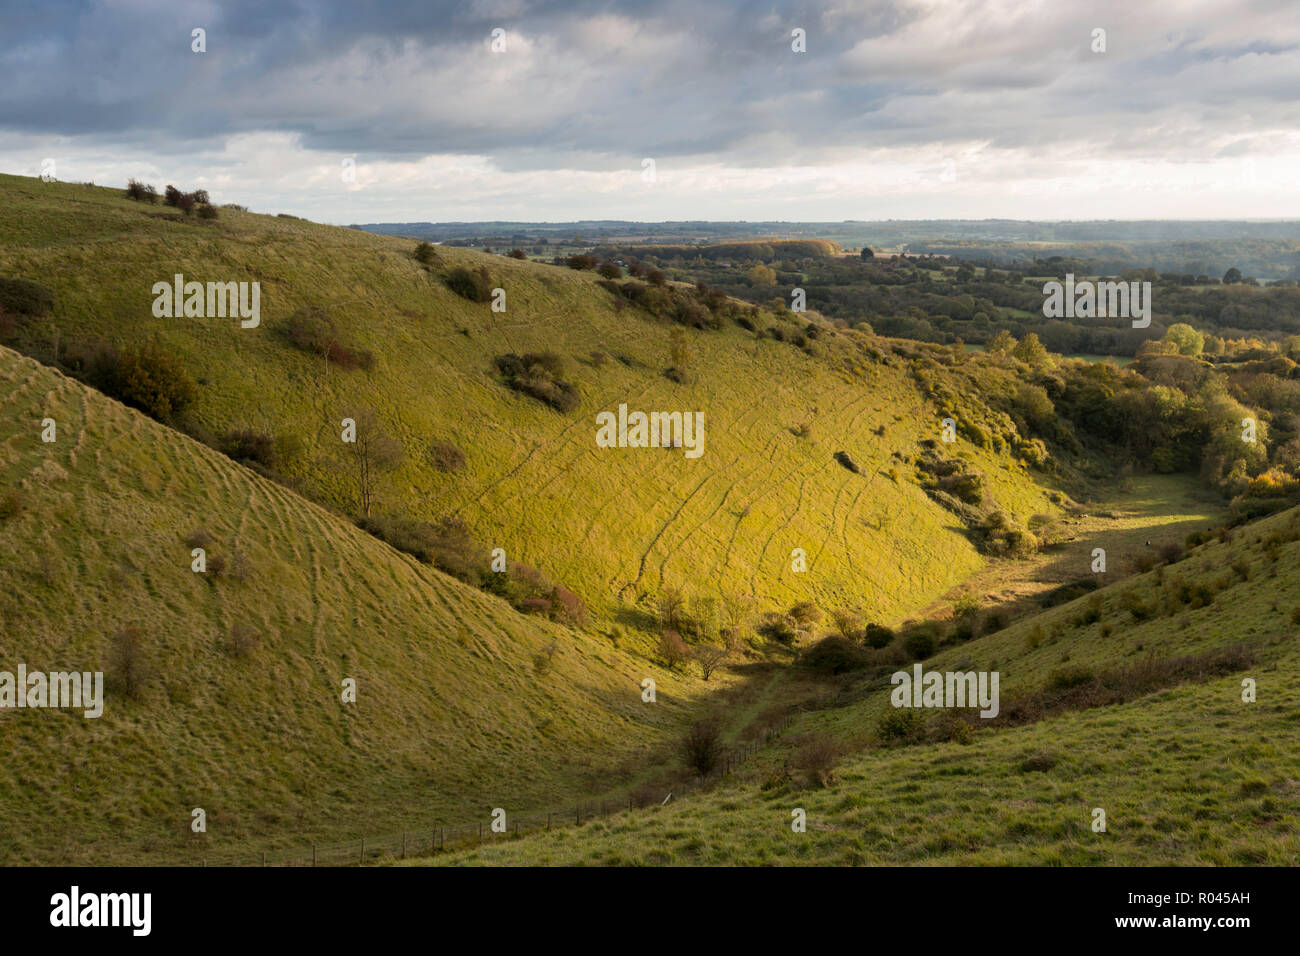 Late afternoon light during October on the Devil's Kneading Trough, a glacial valley in the Kent Downs AONB near Wye, UK. - Stock Image